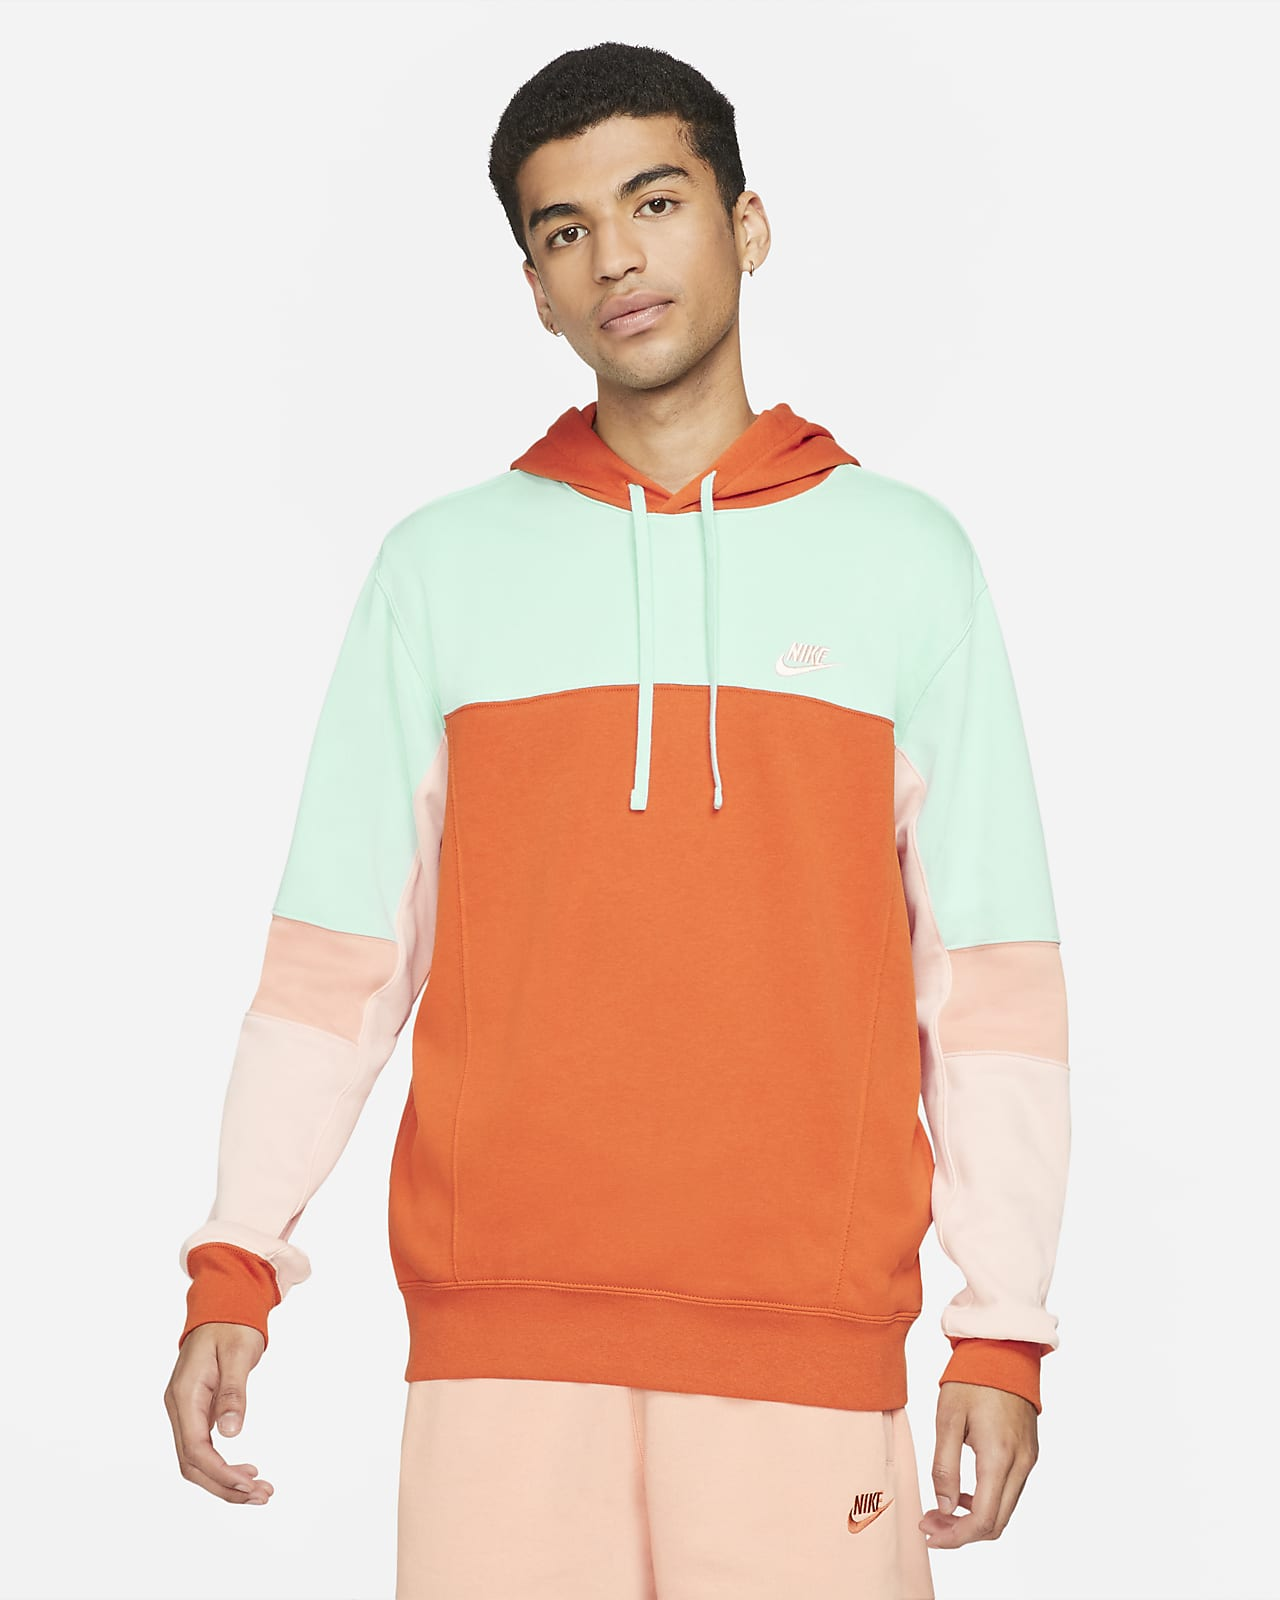 Nike Sportswear Men S Pullover French Terry Hoodie Nike At [ 1600 x 1280 Pixel ]